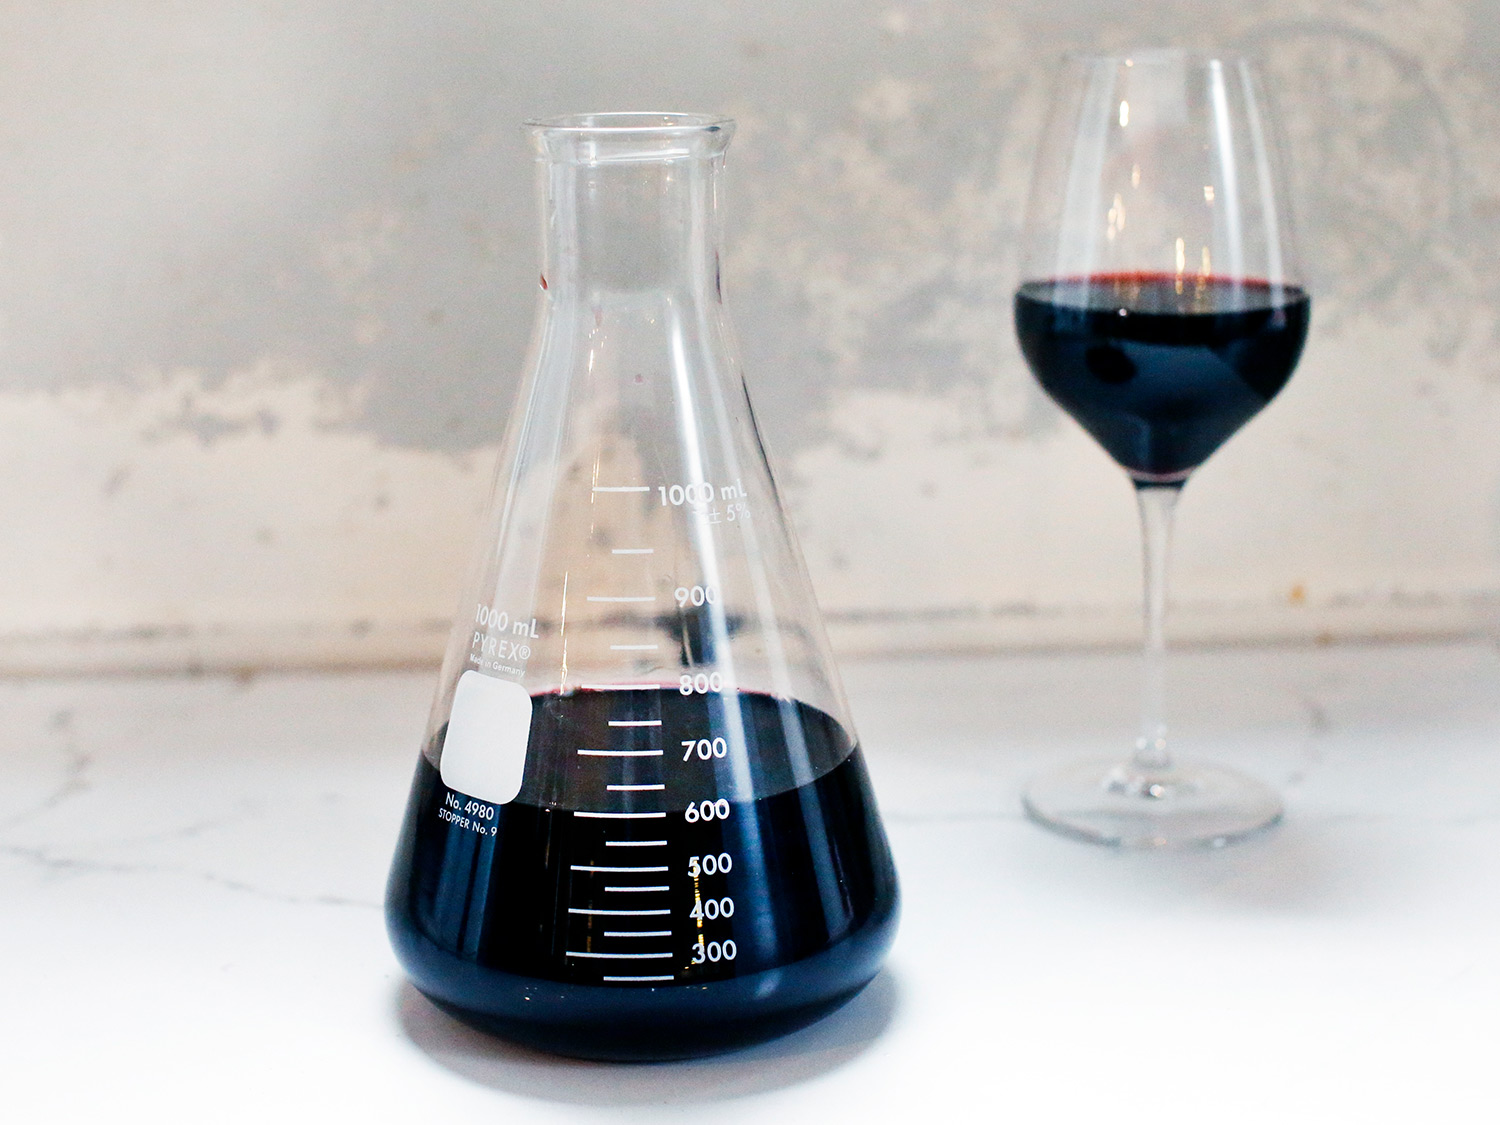 The Best Wine Decanter Is A Piece Of Lab Equipment Saveur